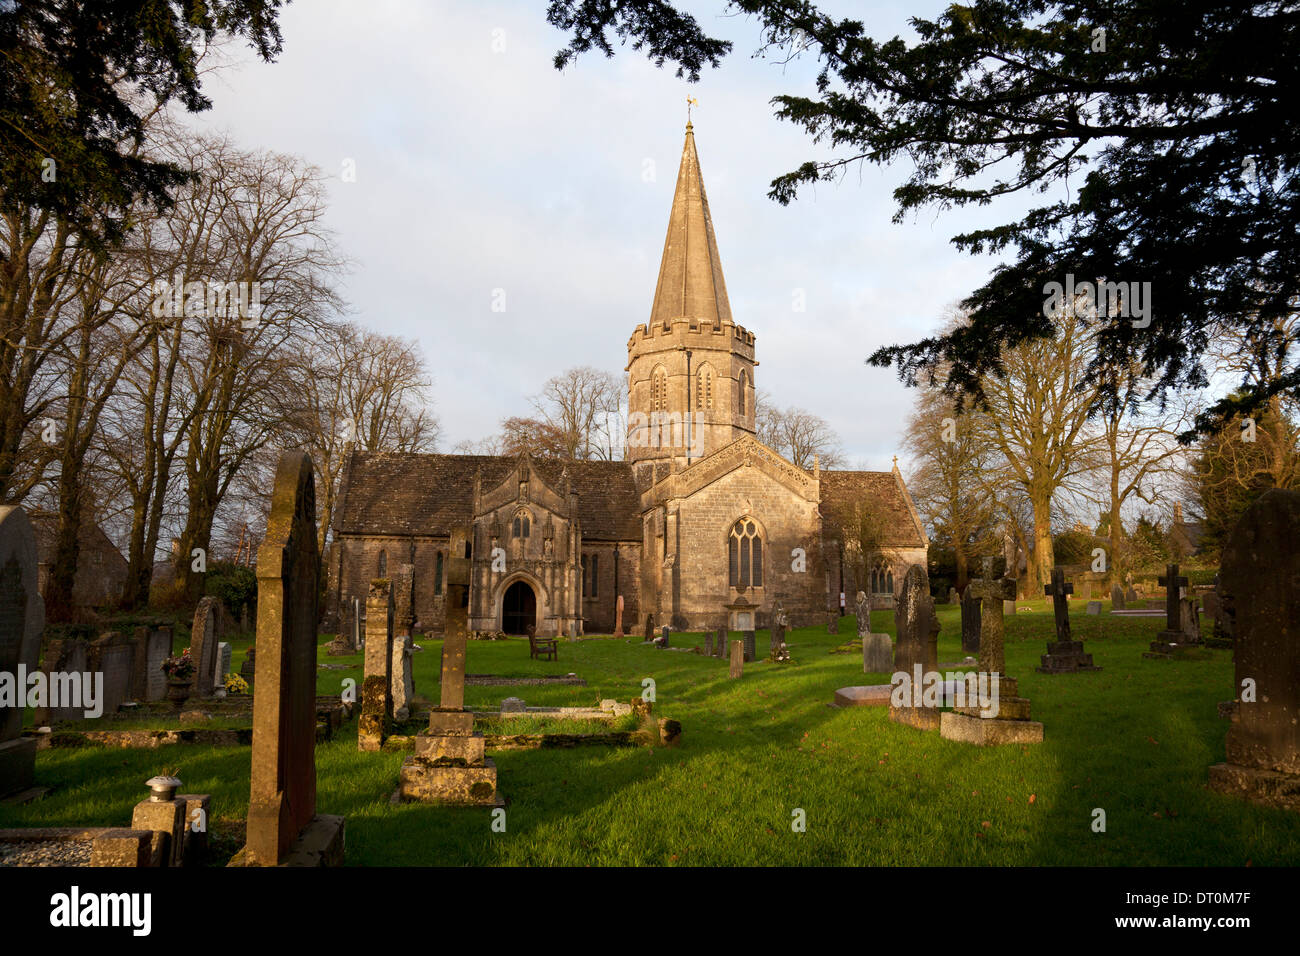 St Aldhelm's Church, Doulting, Somerset Stock Photo